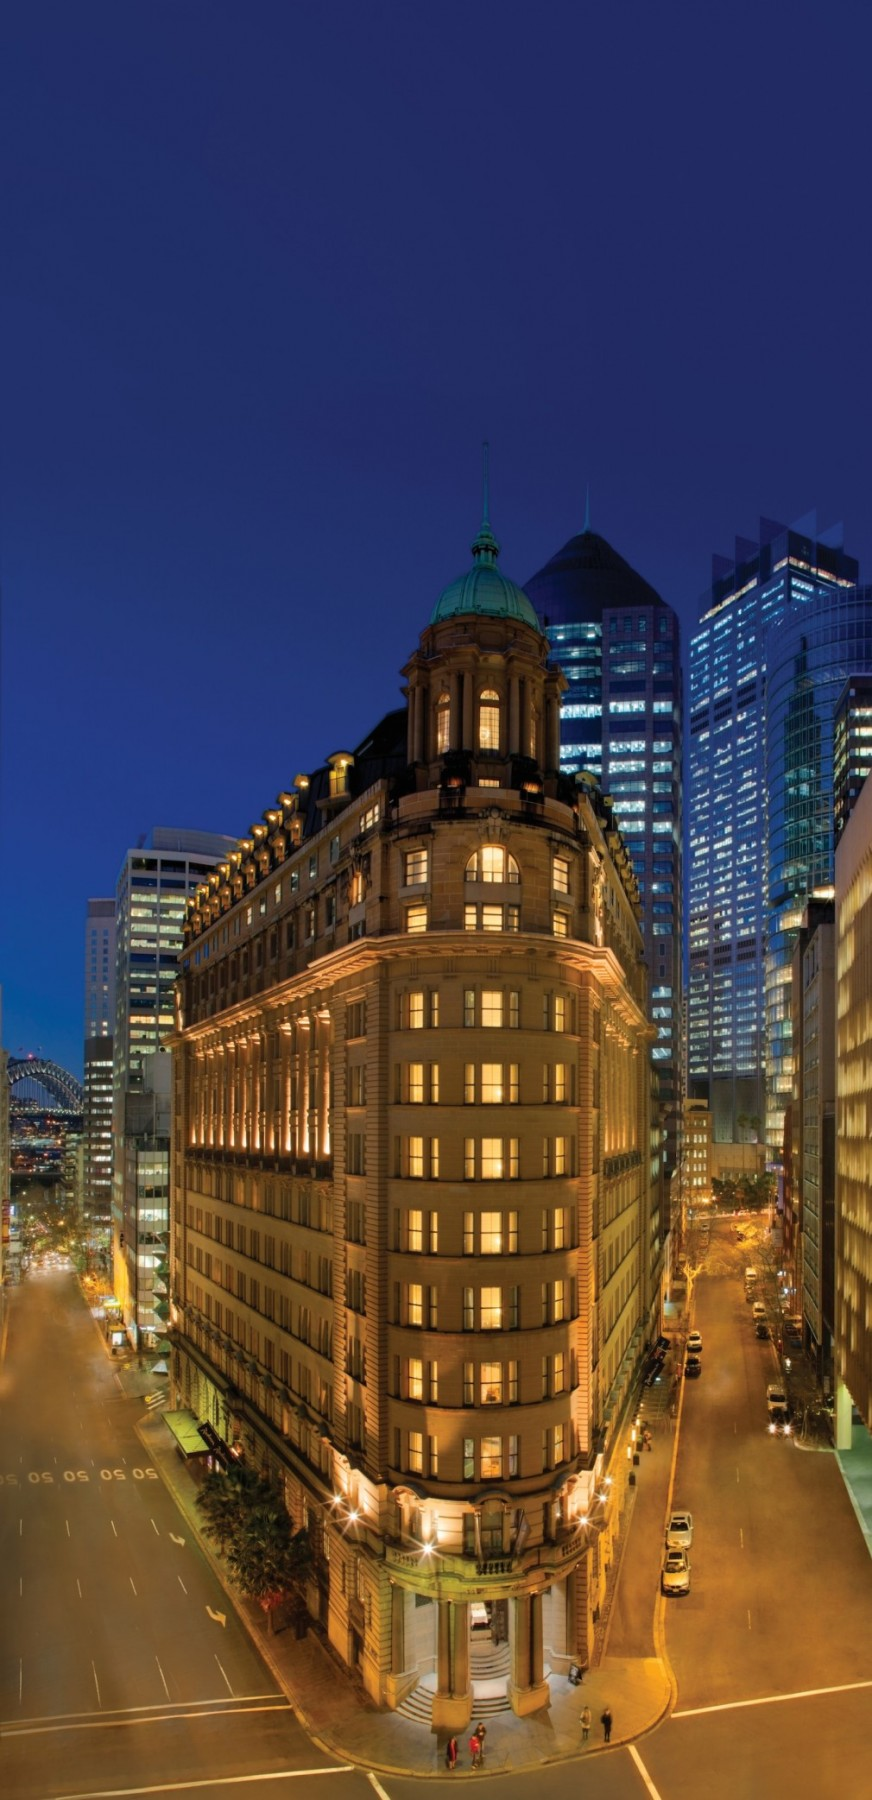 Radisson Blu Hotel Sydney - This Magnificent Life